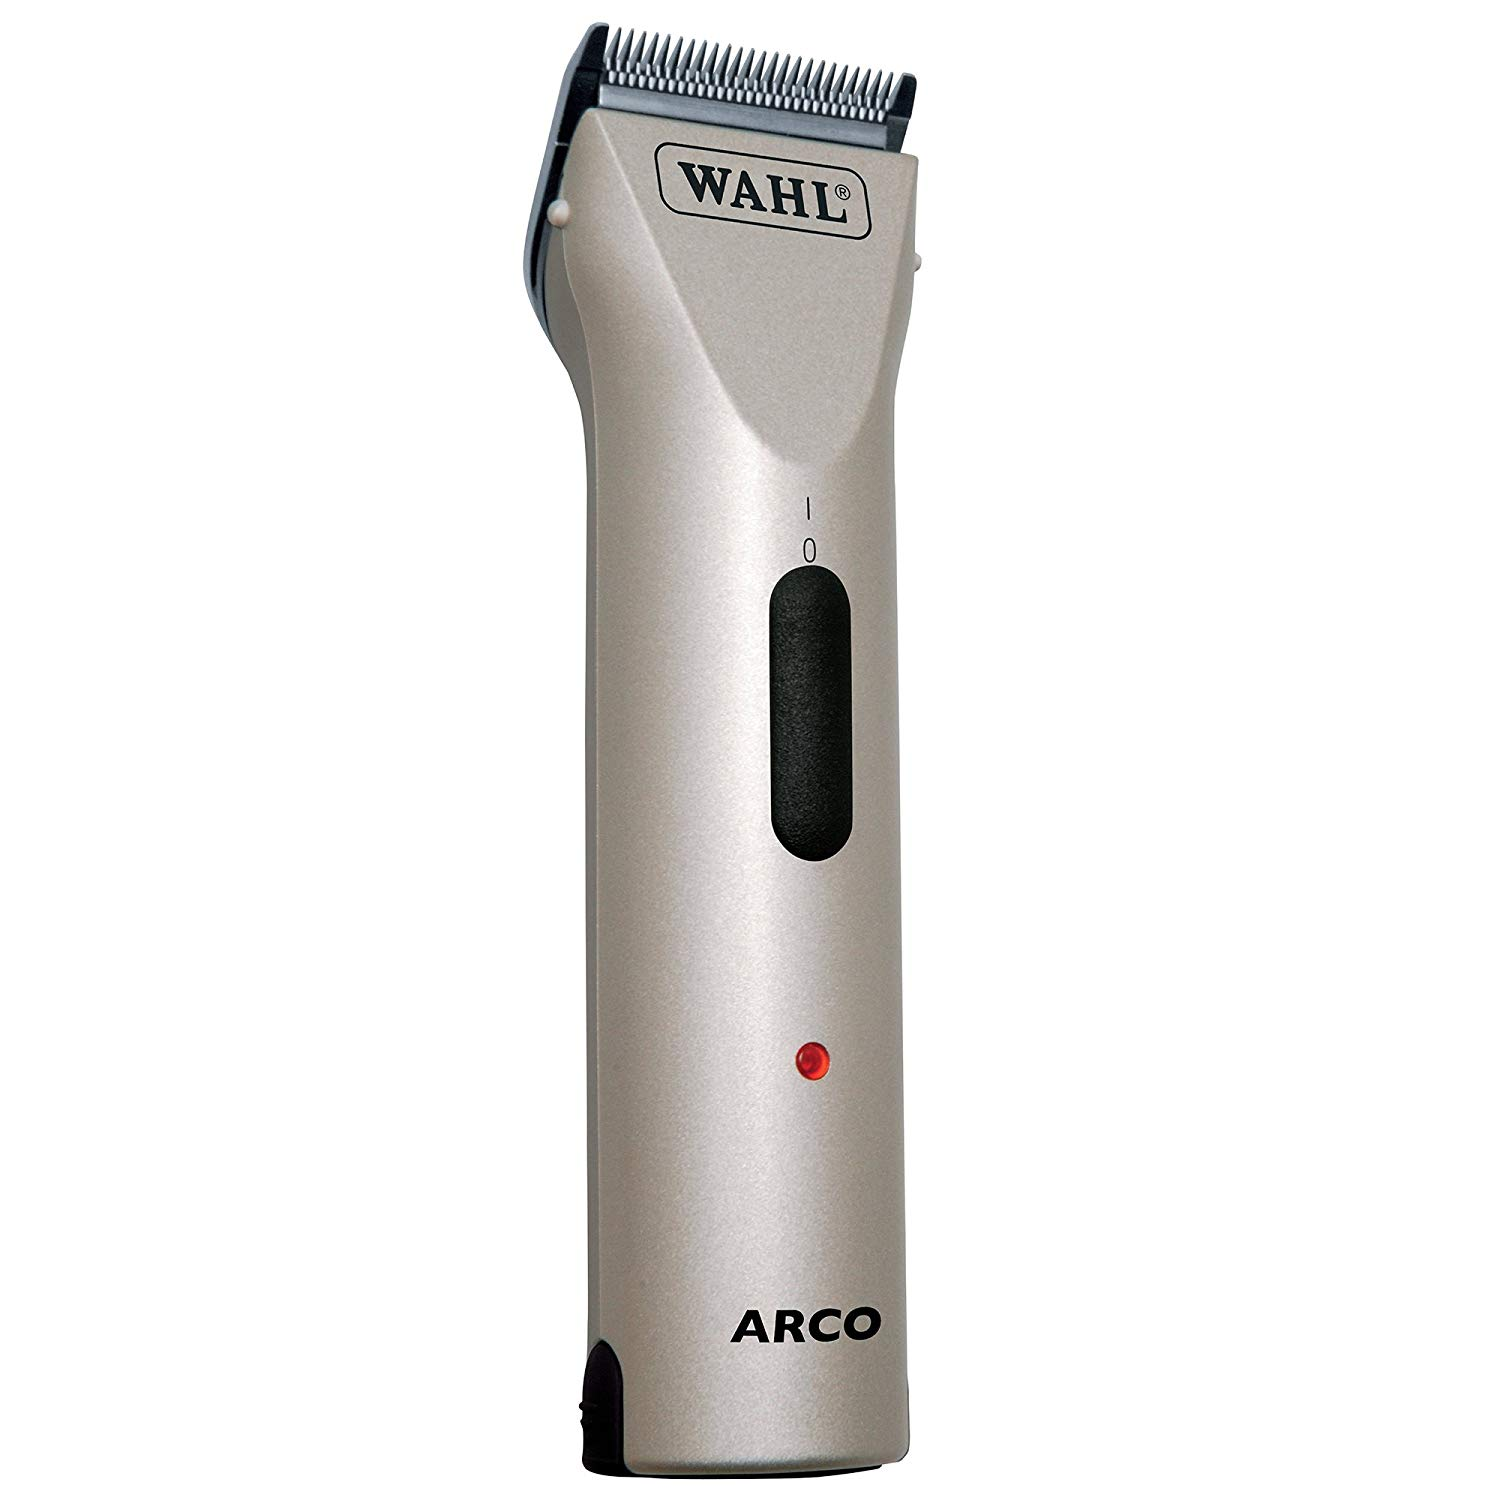 Wahl Professional Arco Equine Cordless Dog Grooming Clipper Review by www.puppyurl.com